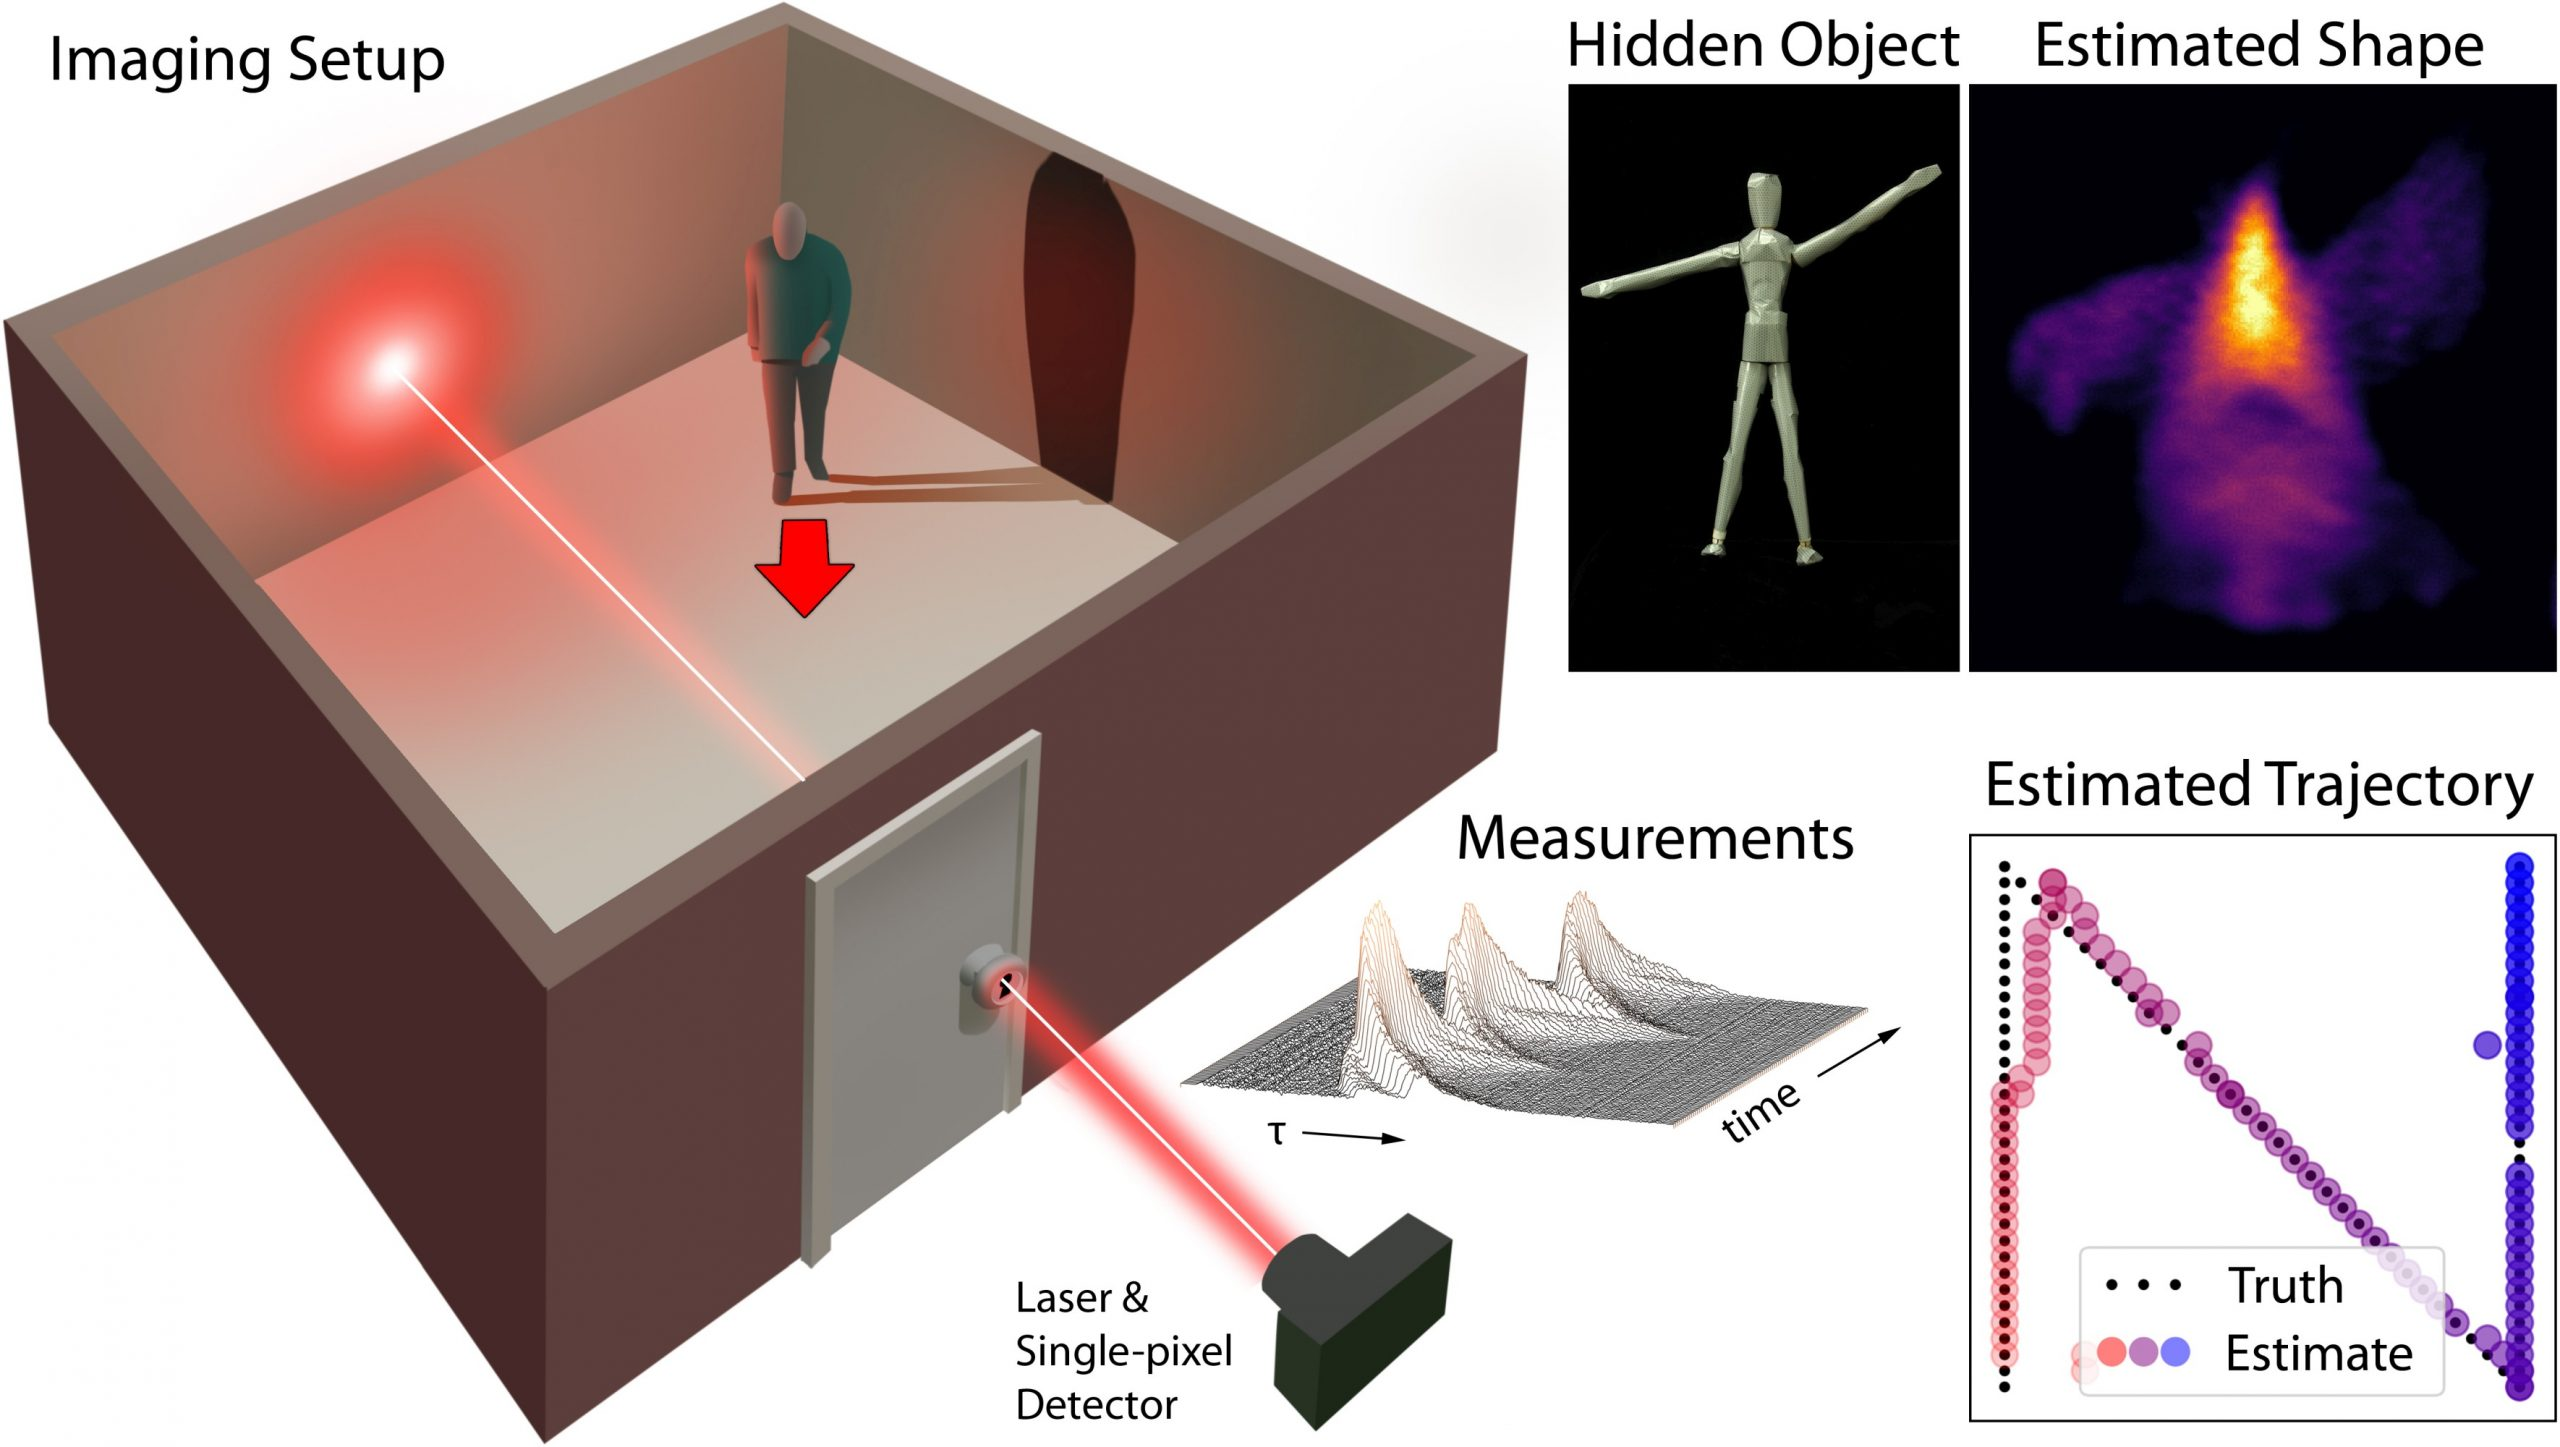 Keyhole Imaging Overview